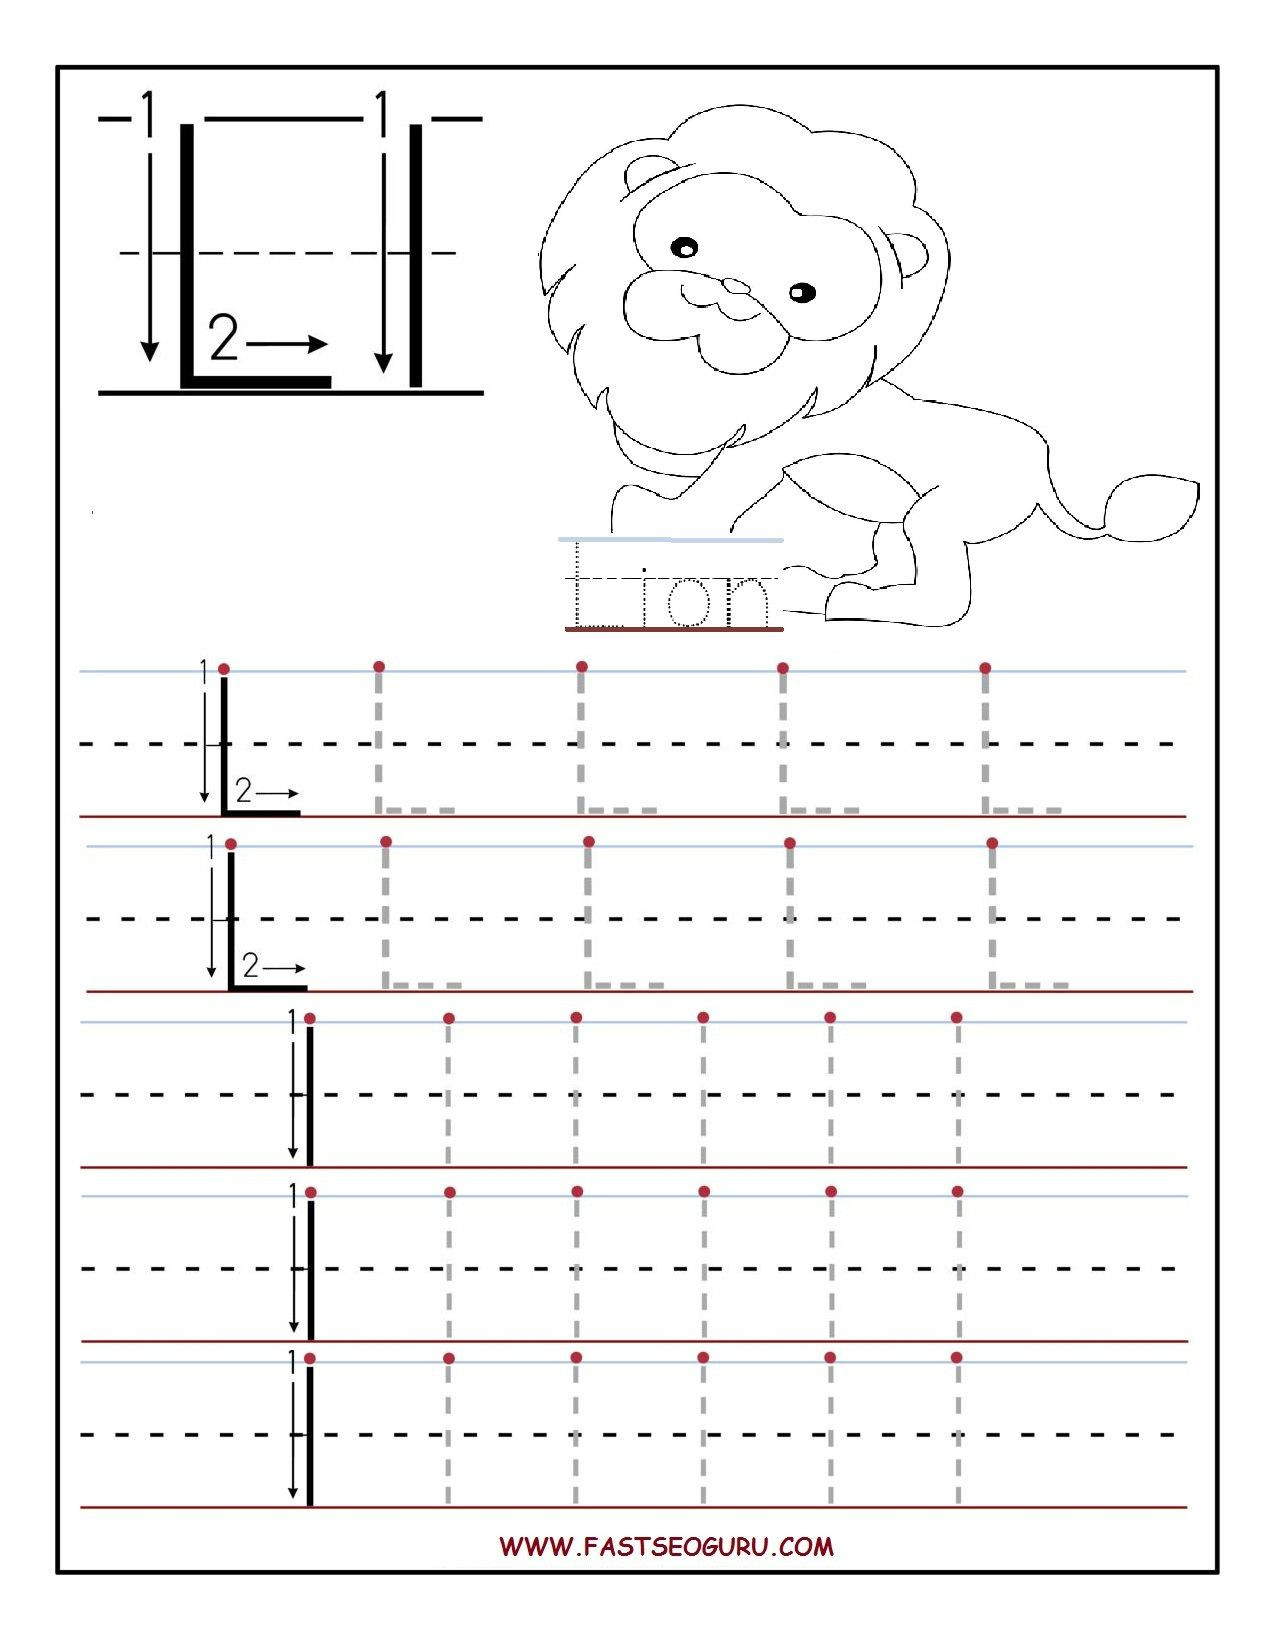 Letter L Worksheet Preschool Printable Letter L Tracing Worksheets for Preschool